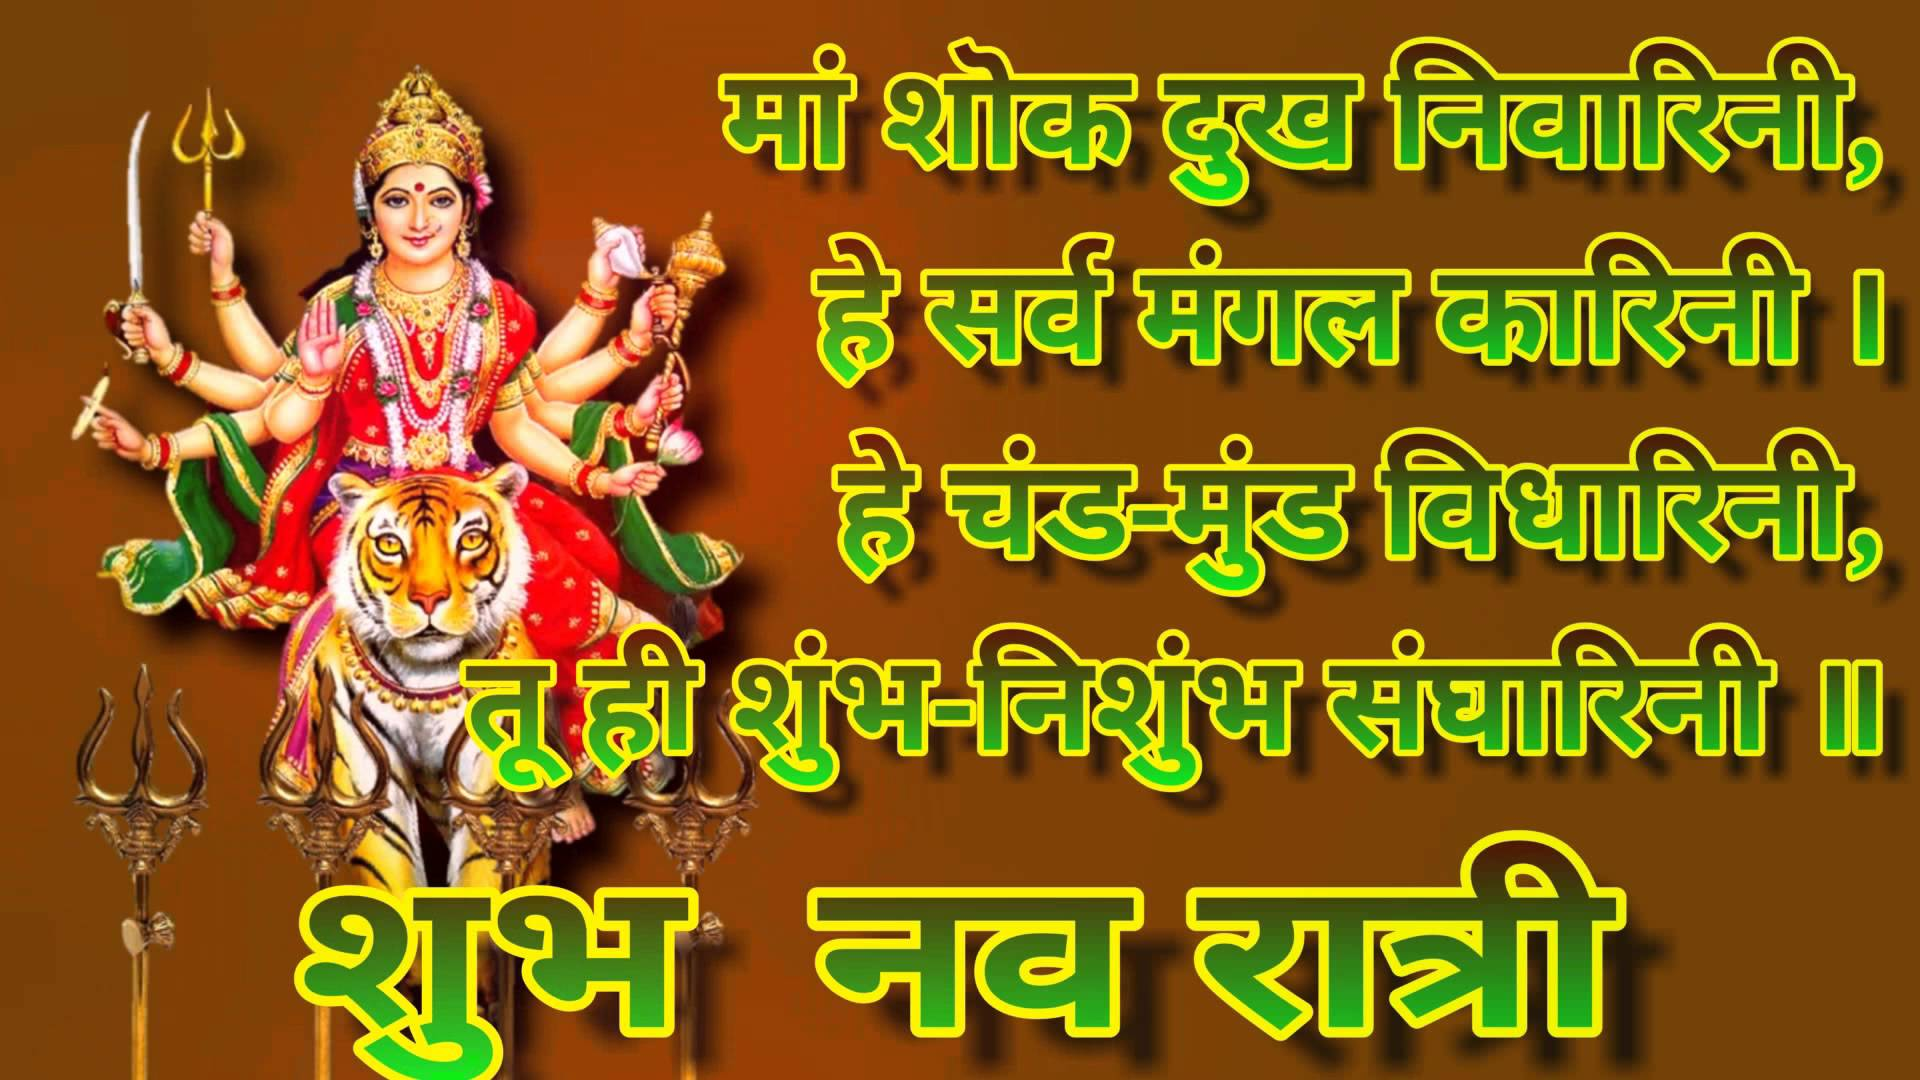 Maa Durga Pics With Quotes